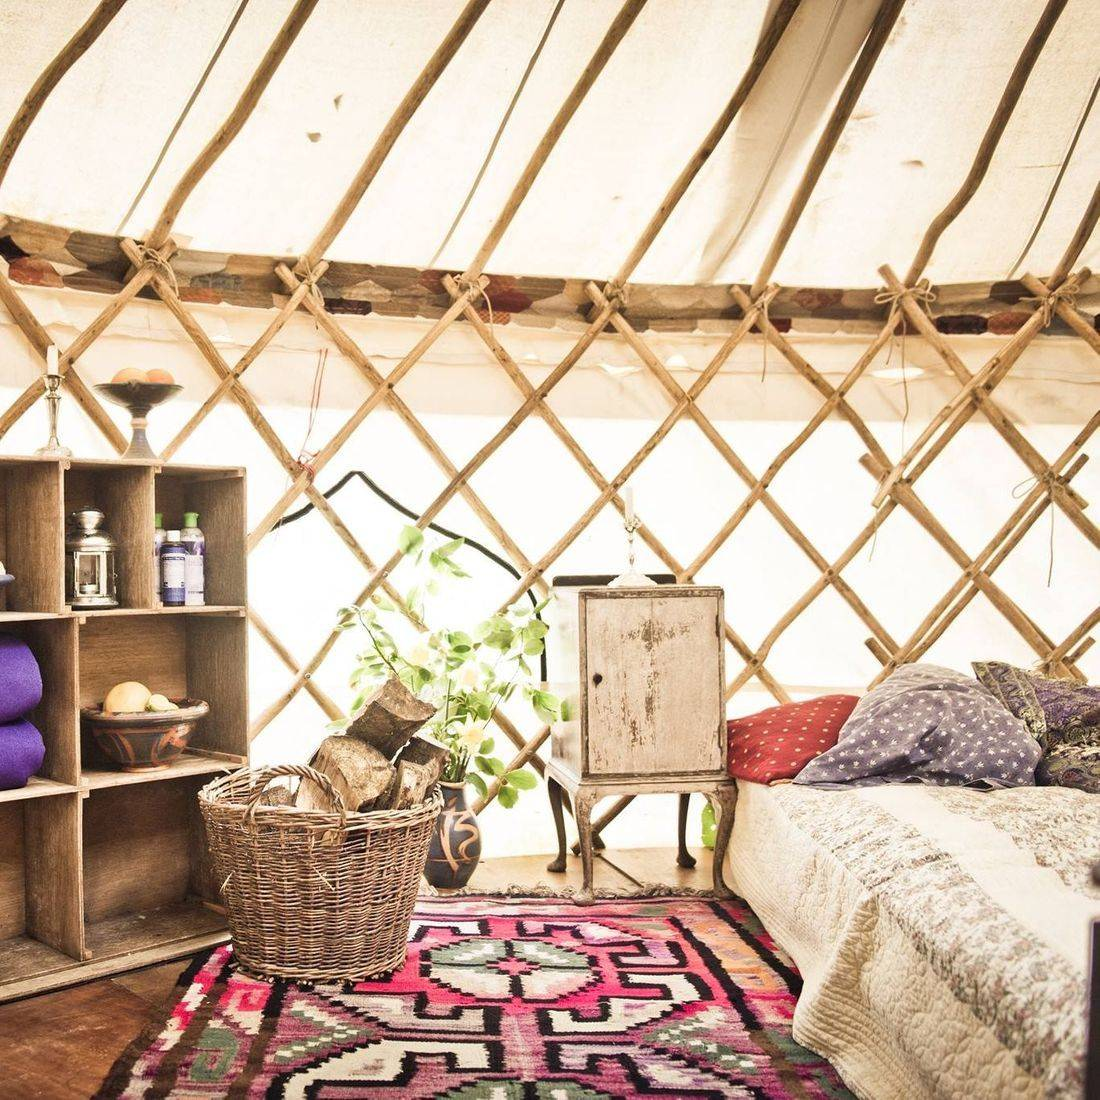 Cosy yurt Wedding accommodation for rent at Coed Hills